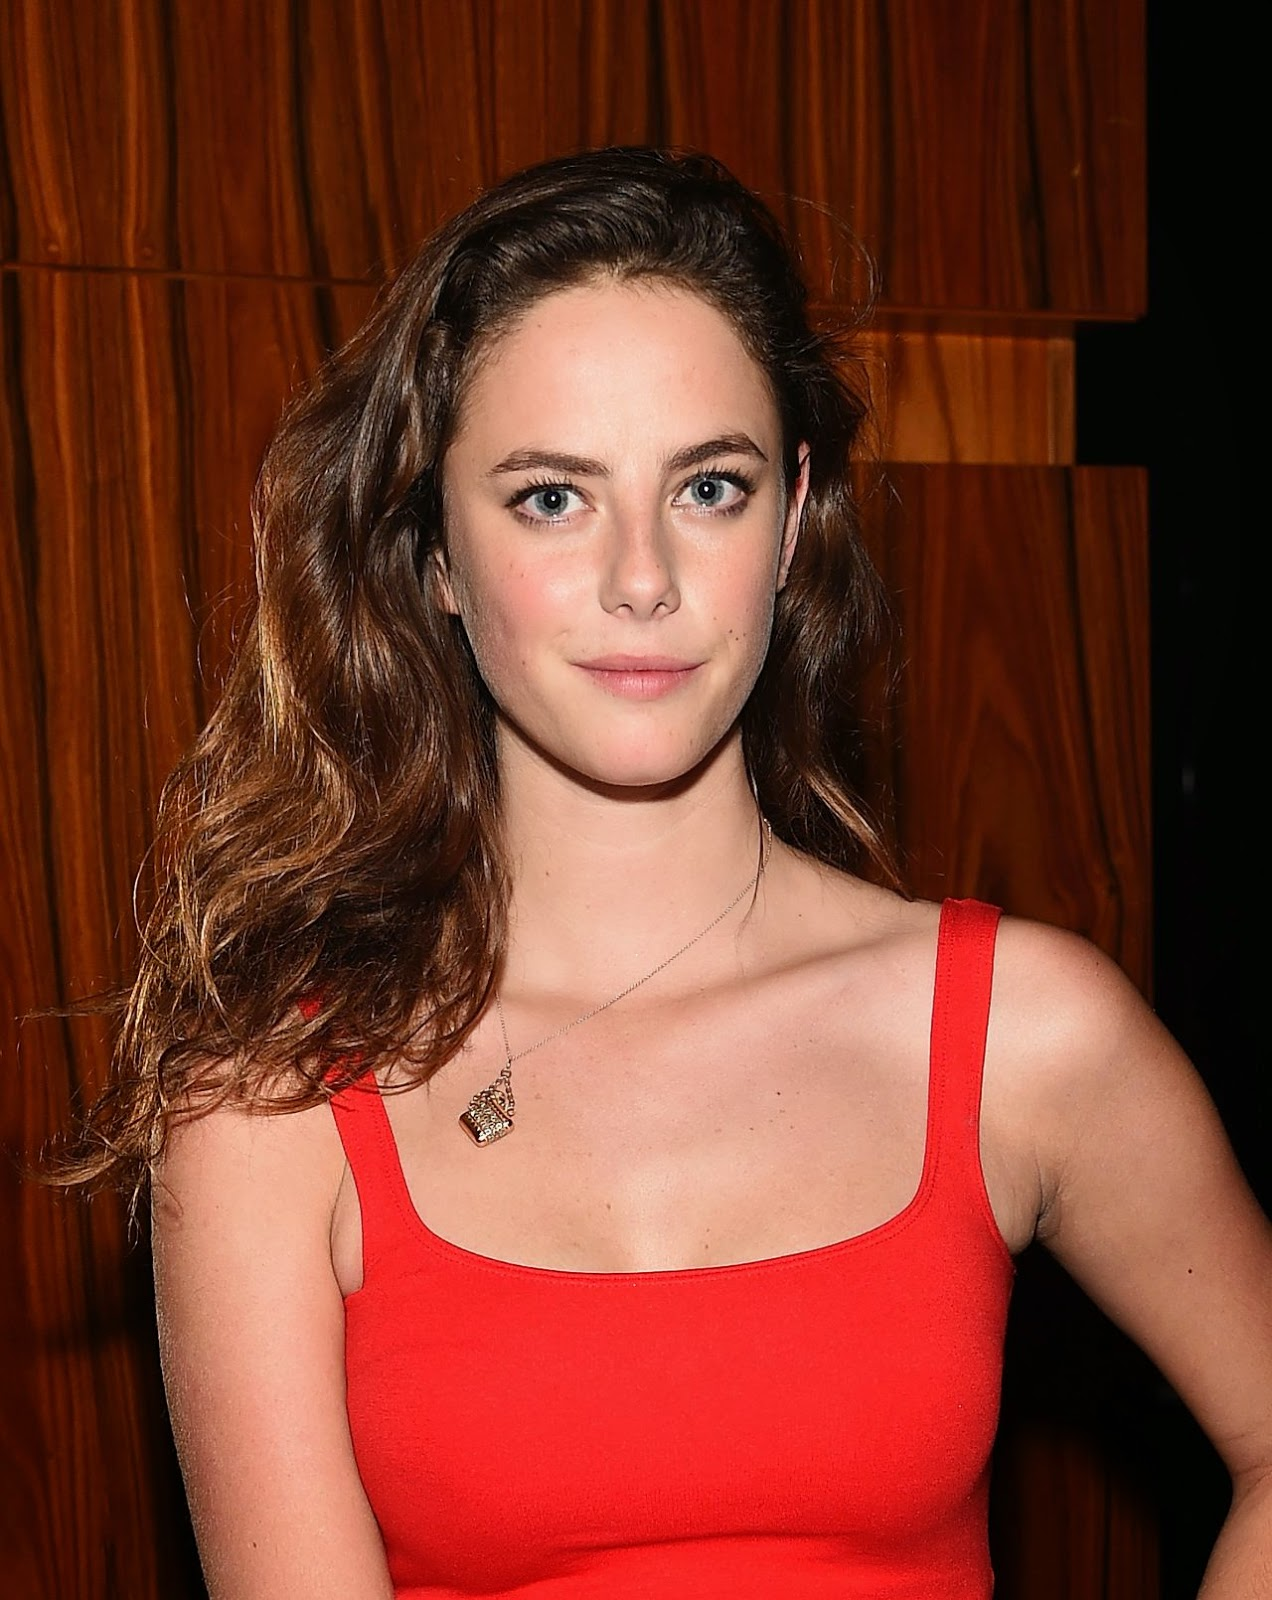 Kaya Scodelario shows off curves in a red dress at 'The Equalizer' New York City premiere